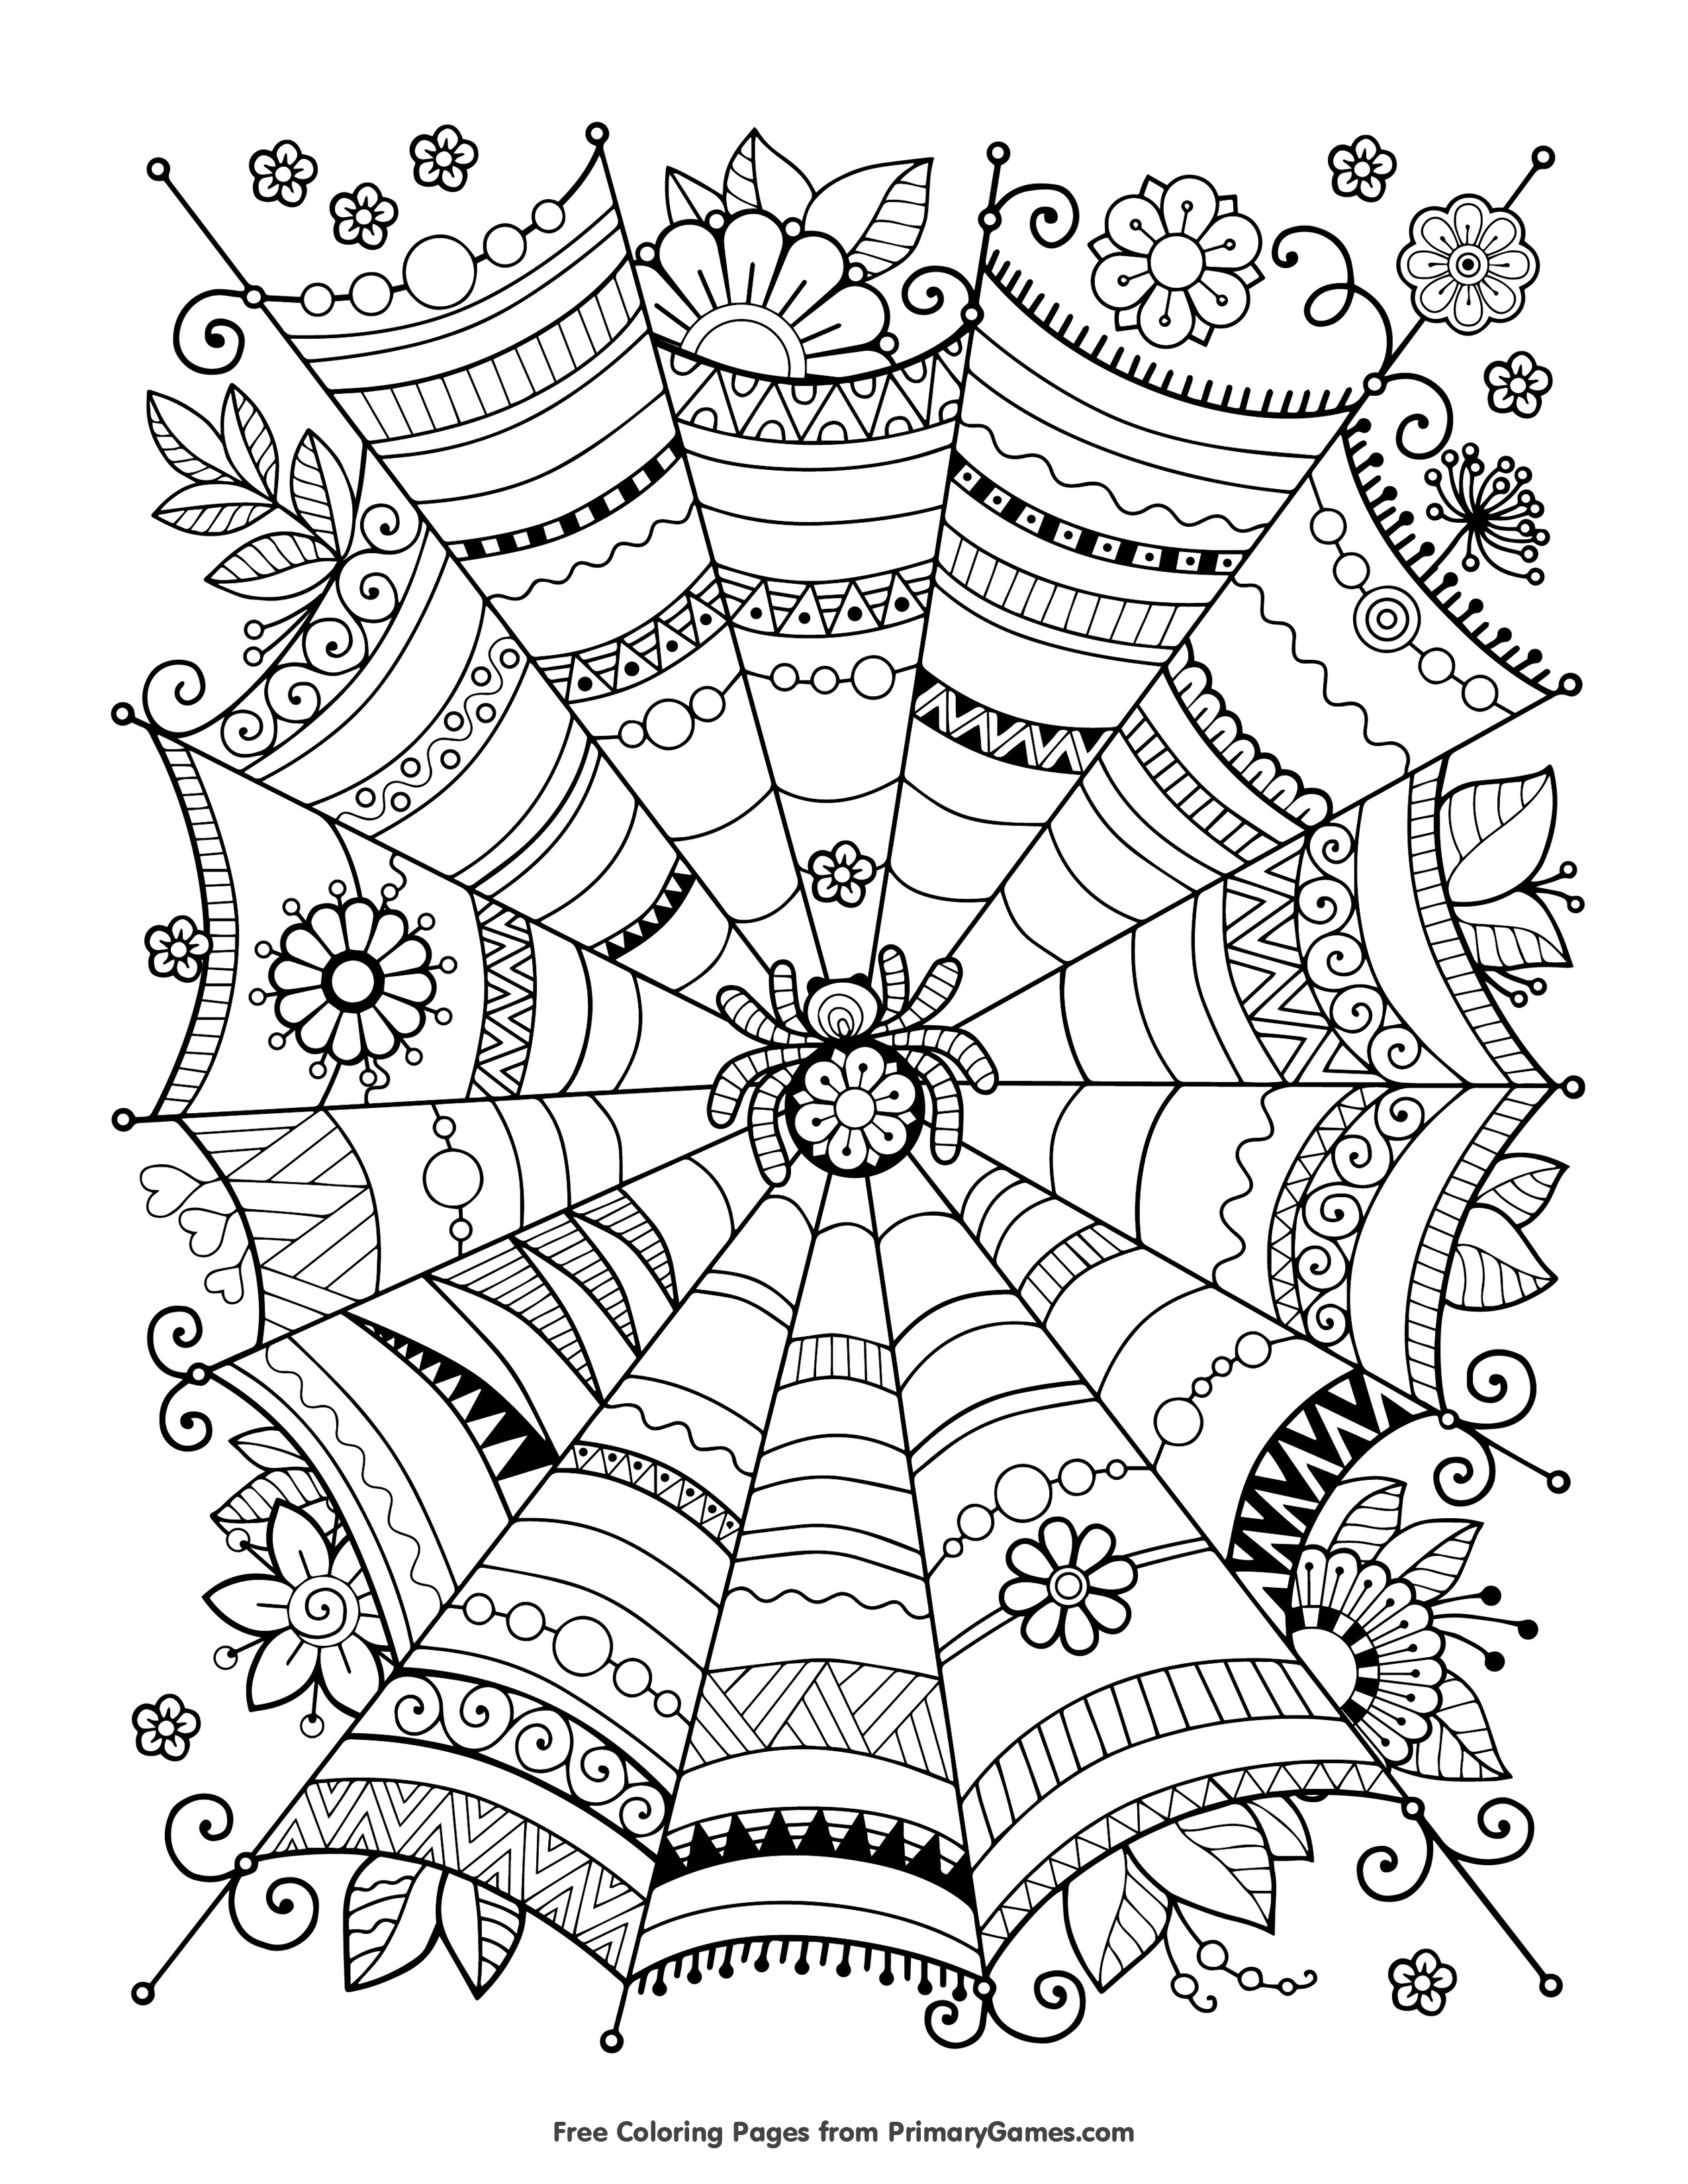 Free Printable Halloween Coloring Page Free Printable Coloring Pages For Halloween Archives